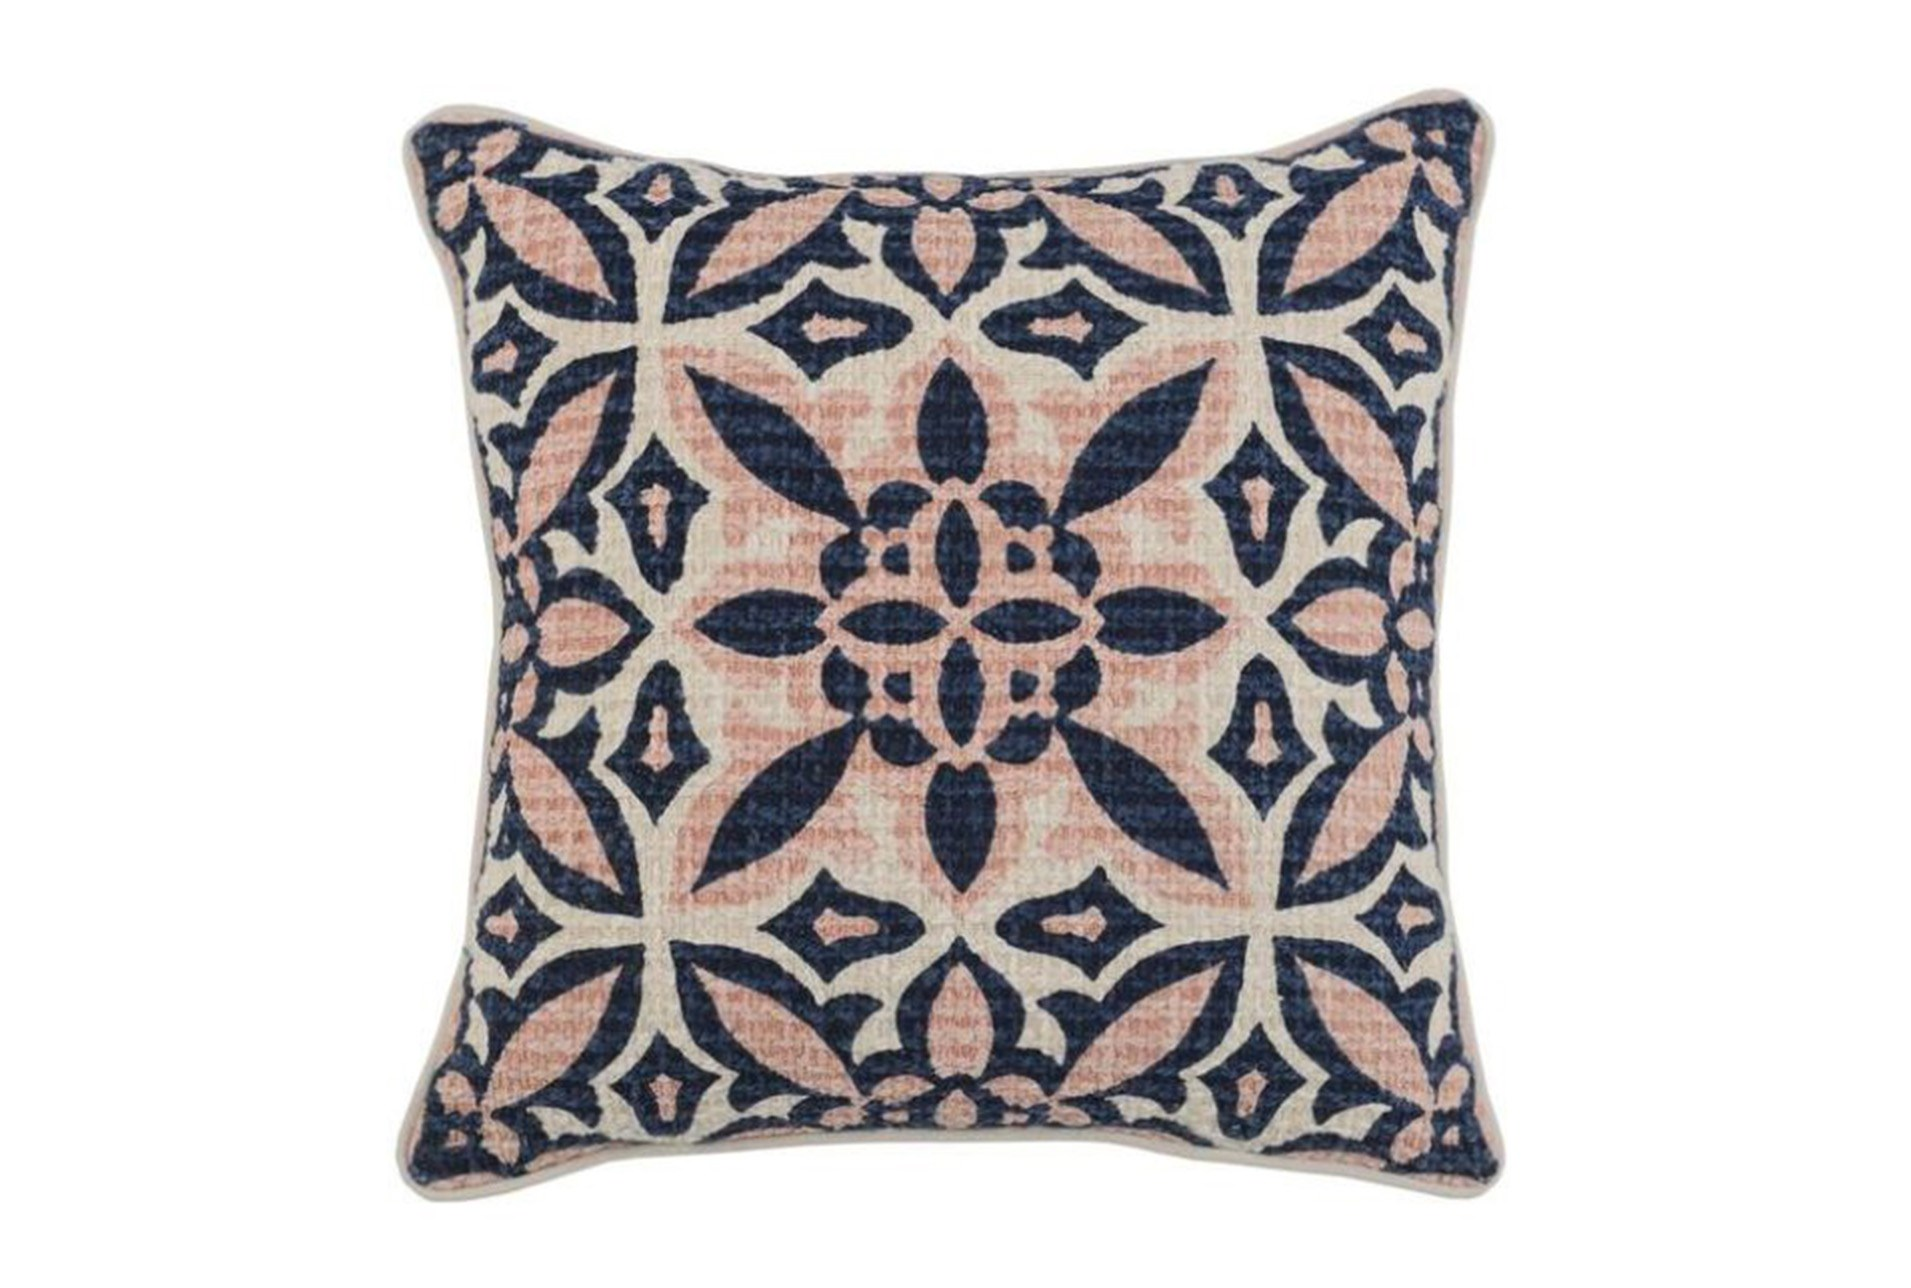 Accent Pillow Blush Amp Navy Printed Cotton 18x18 Living